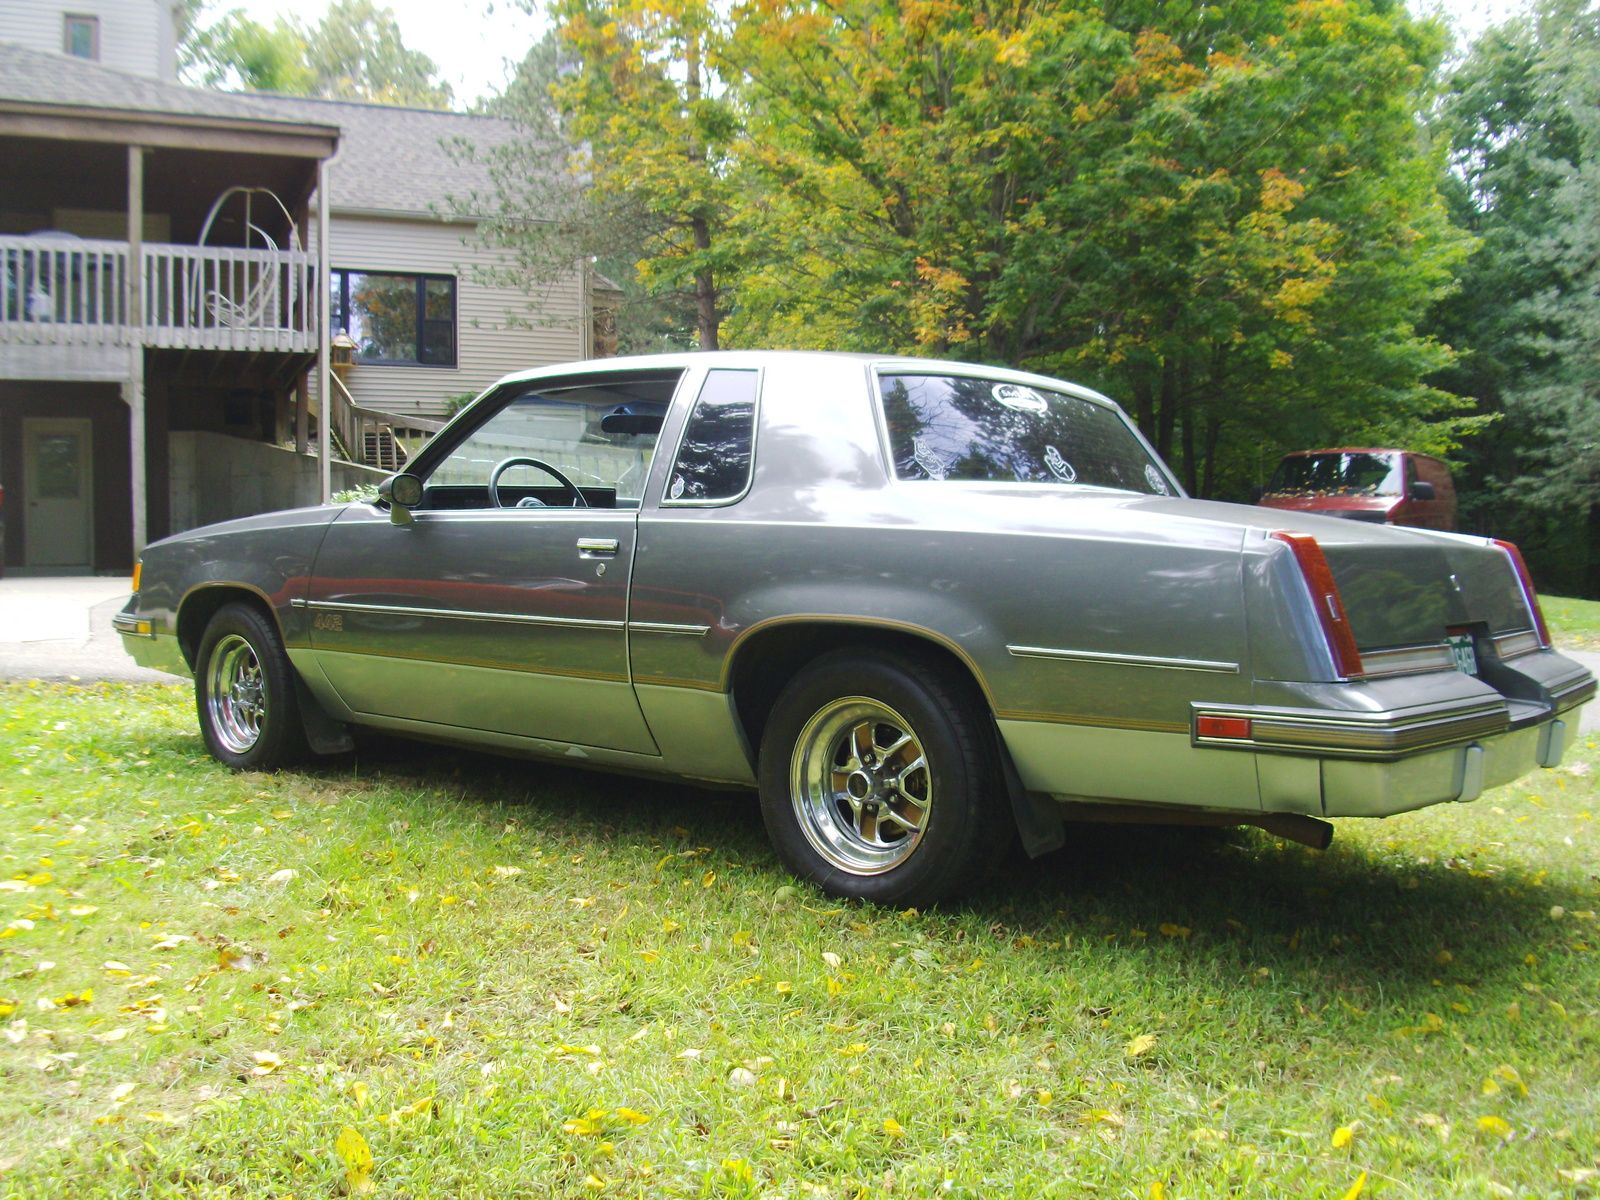 1987 Oldsmobile 442 (With images) Oldsmobile 442